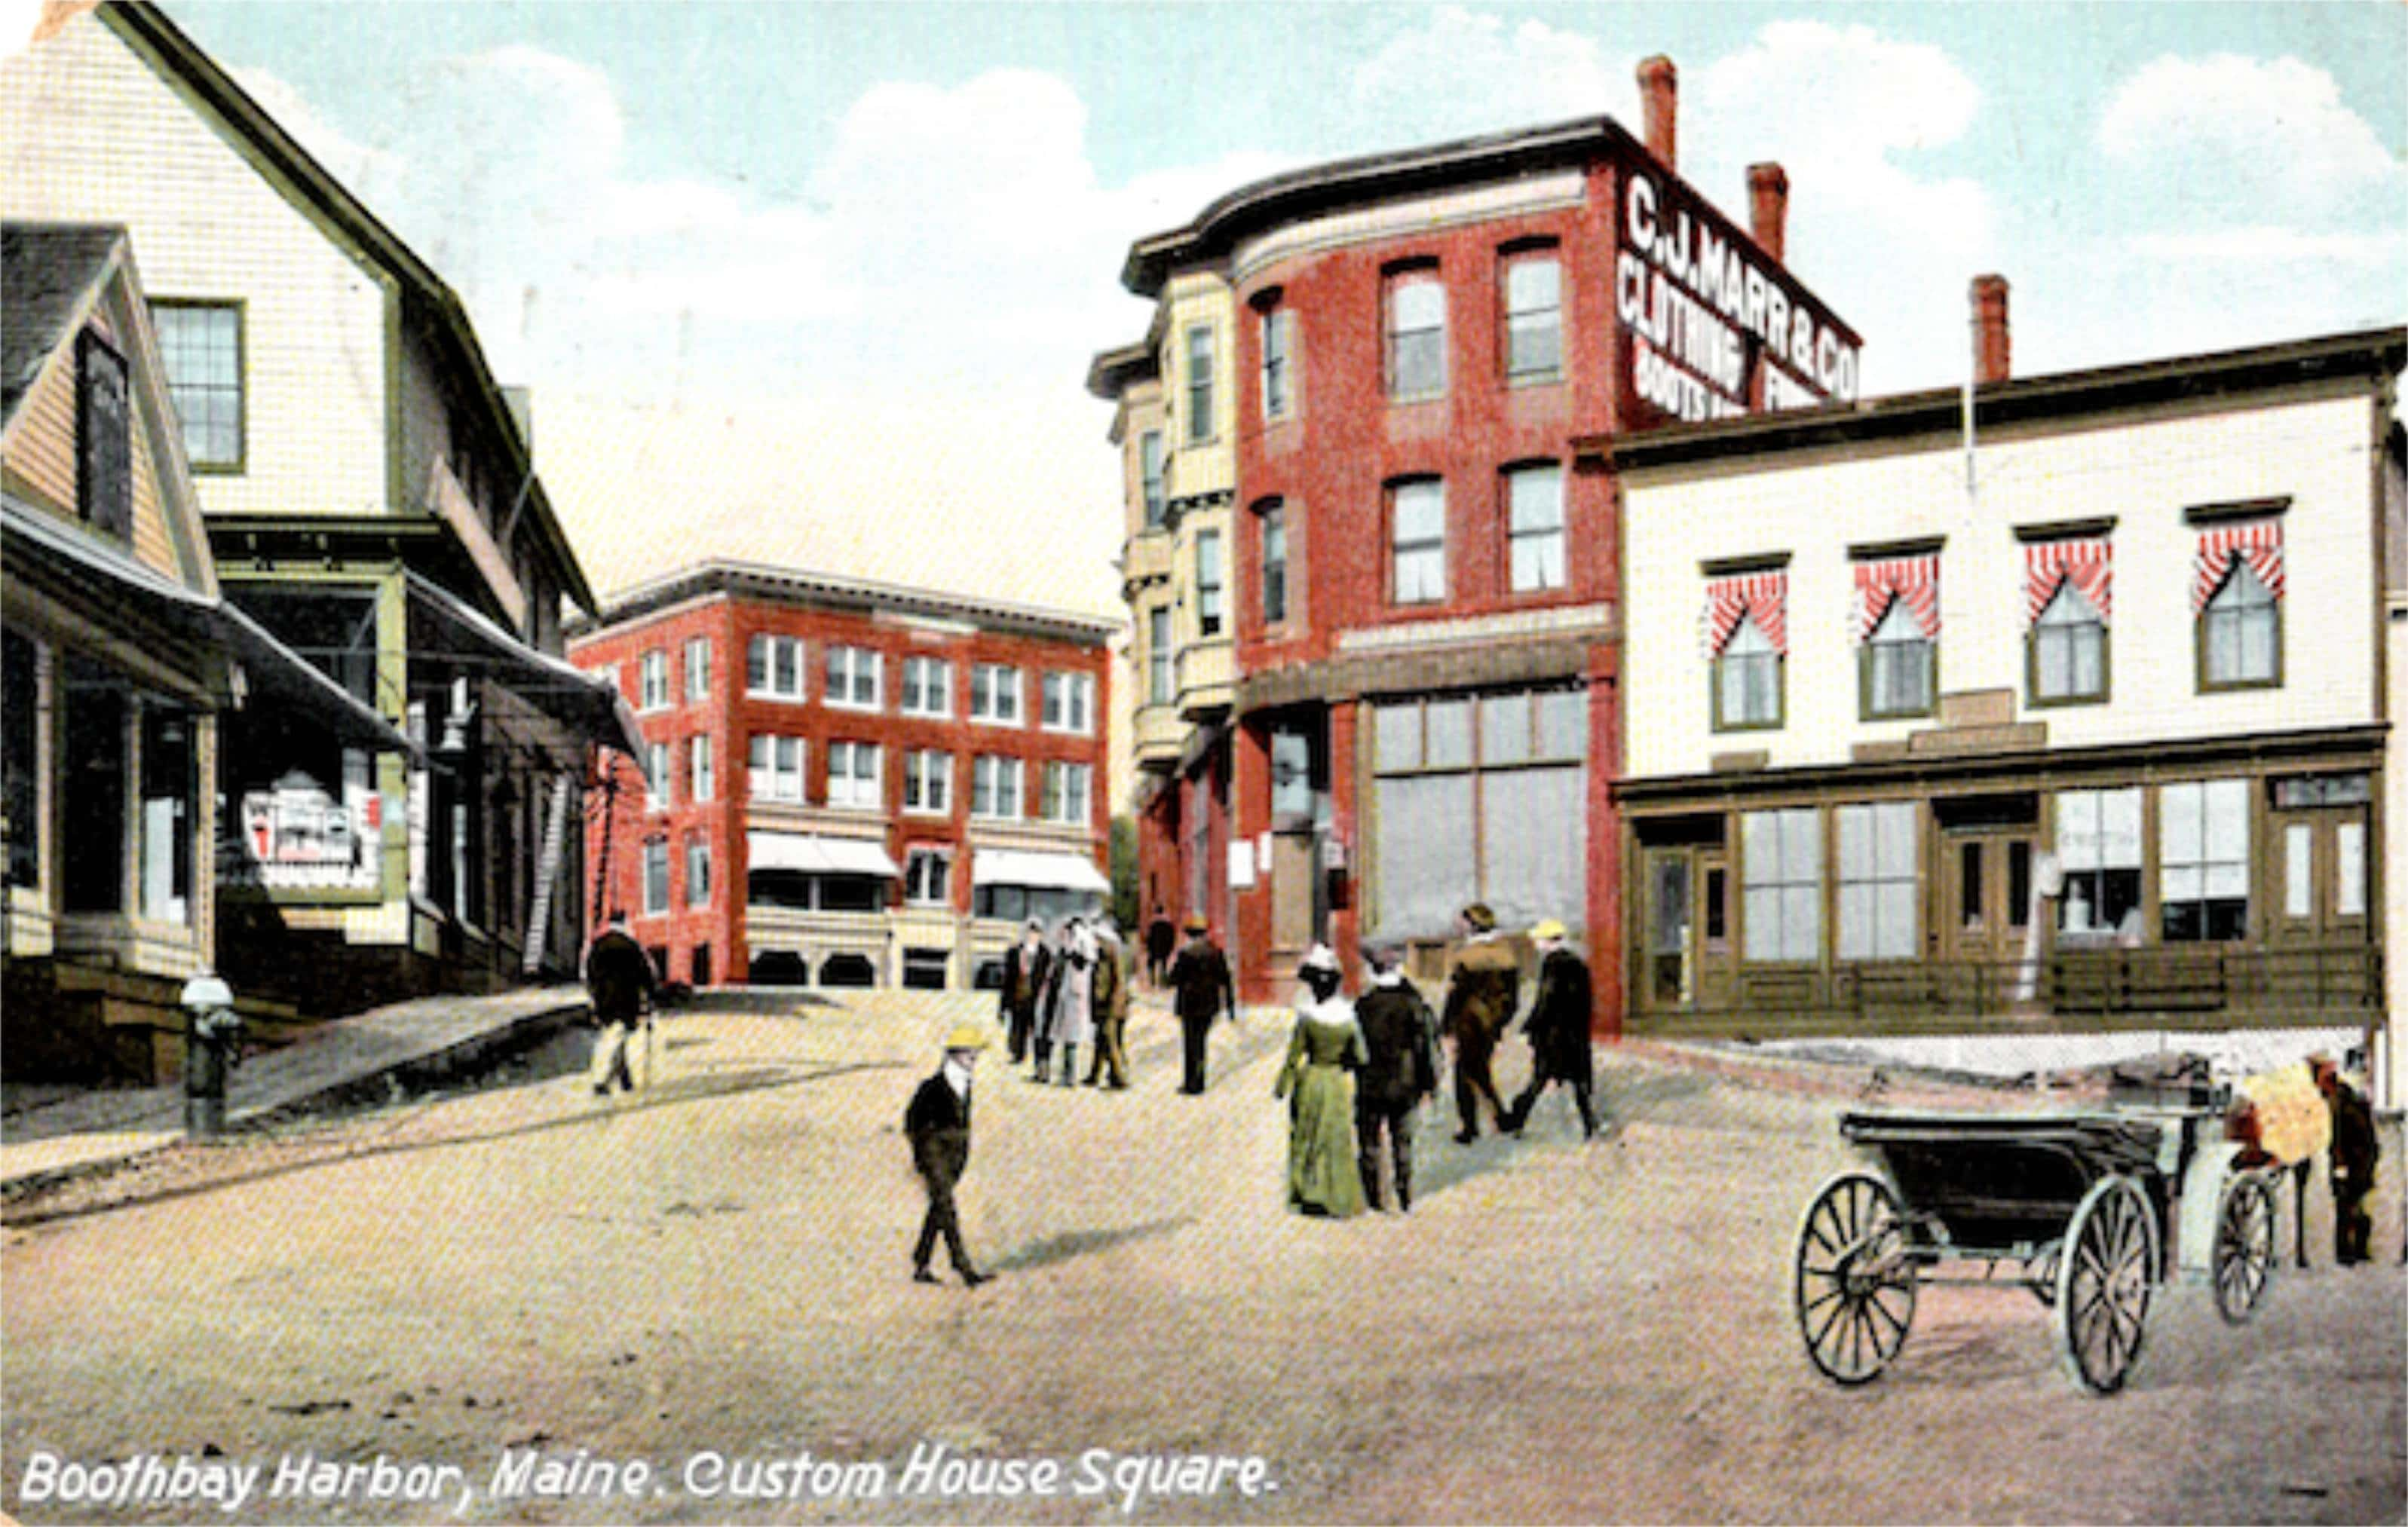 Image Result For Map Of Boothbay Harbor Maine